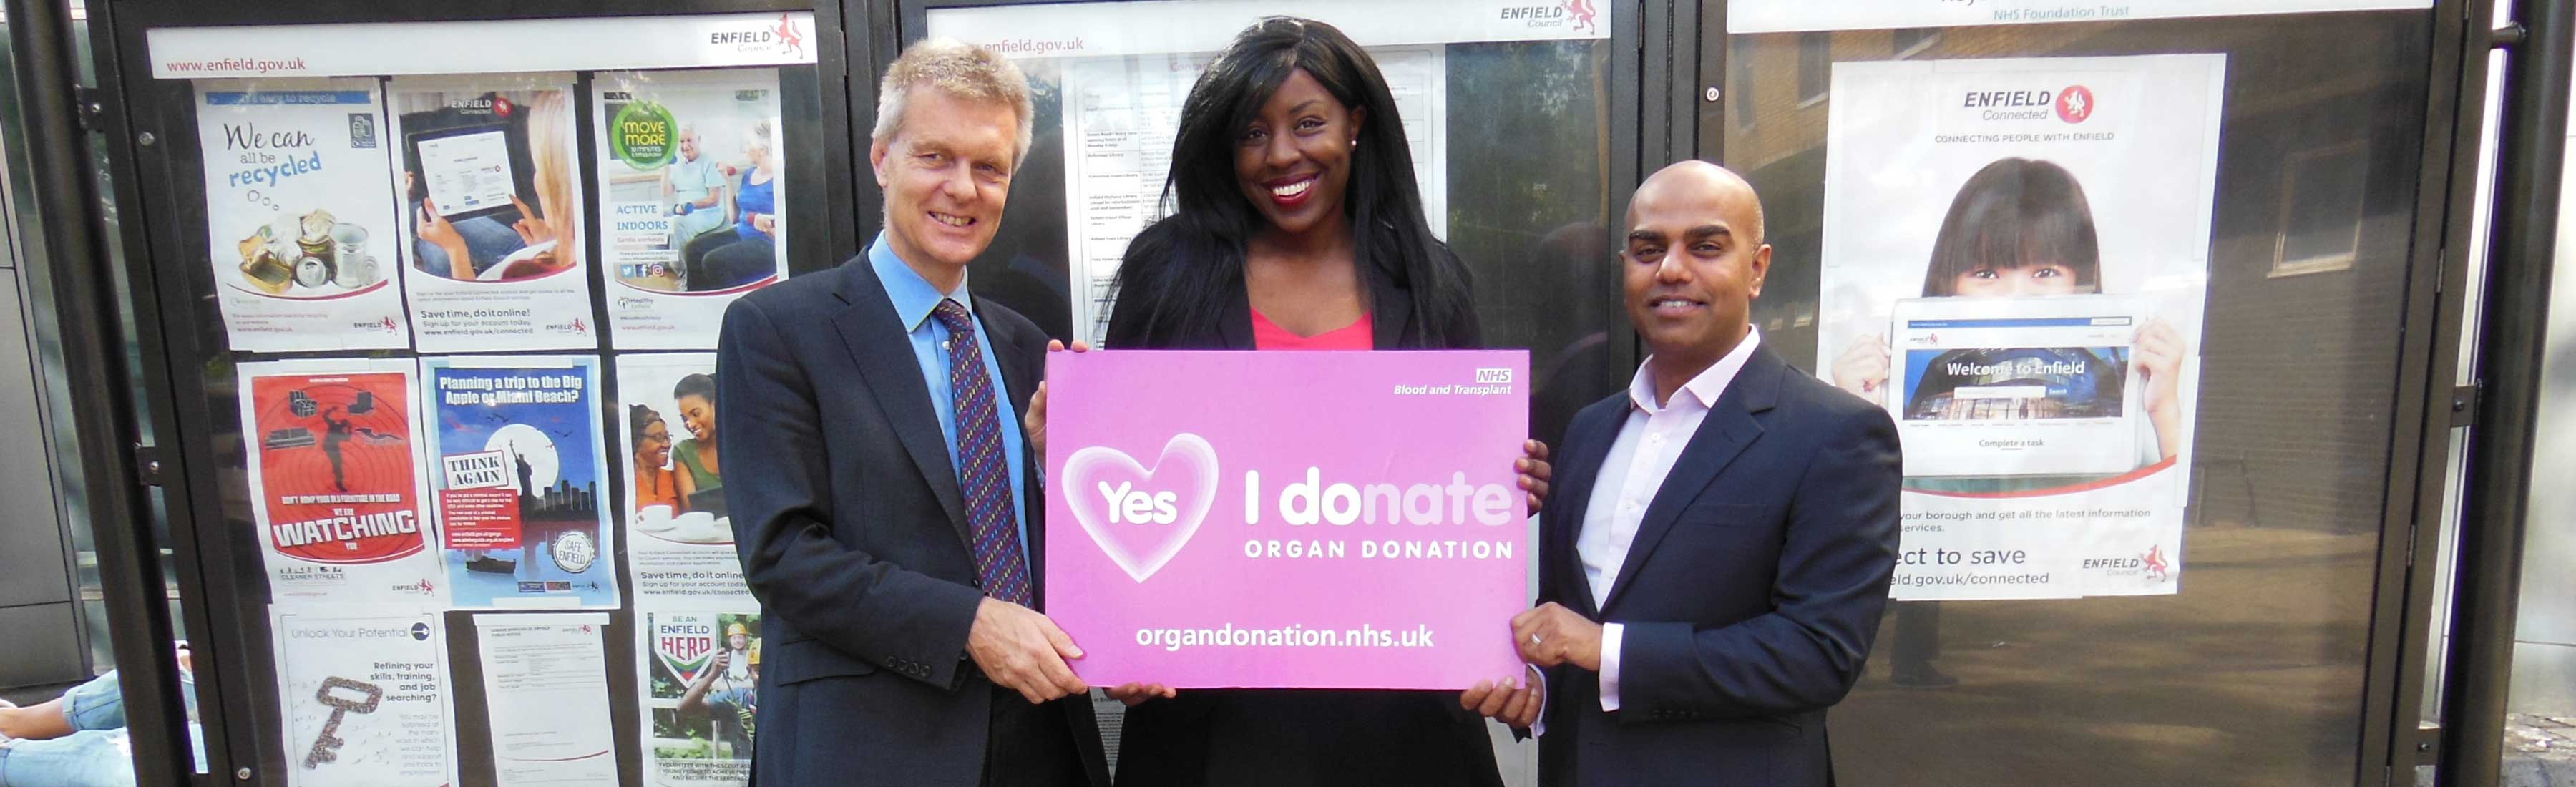 Organ donation, Enfield Council